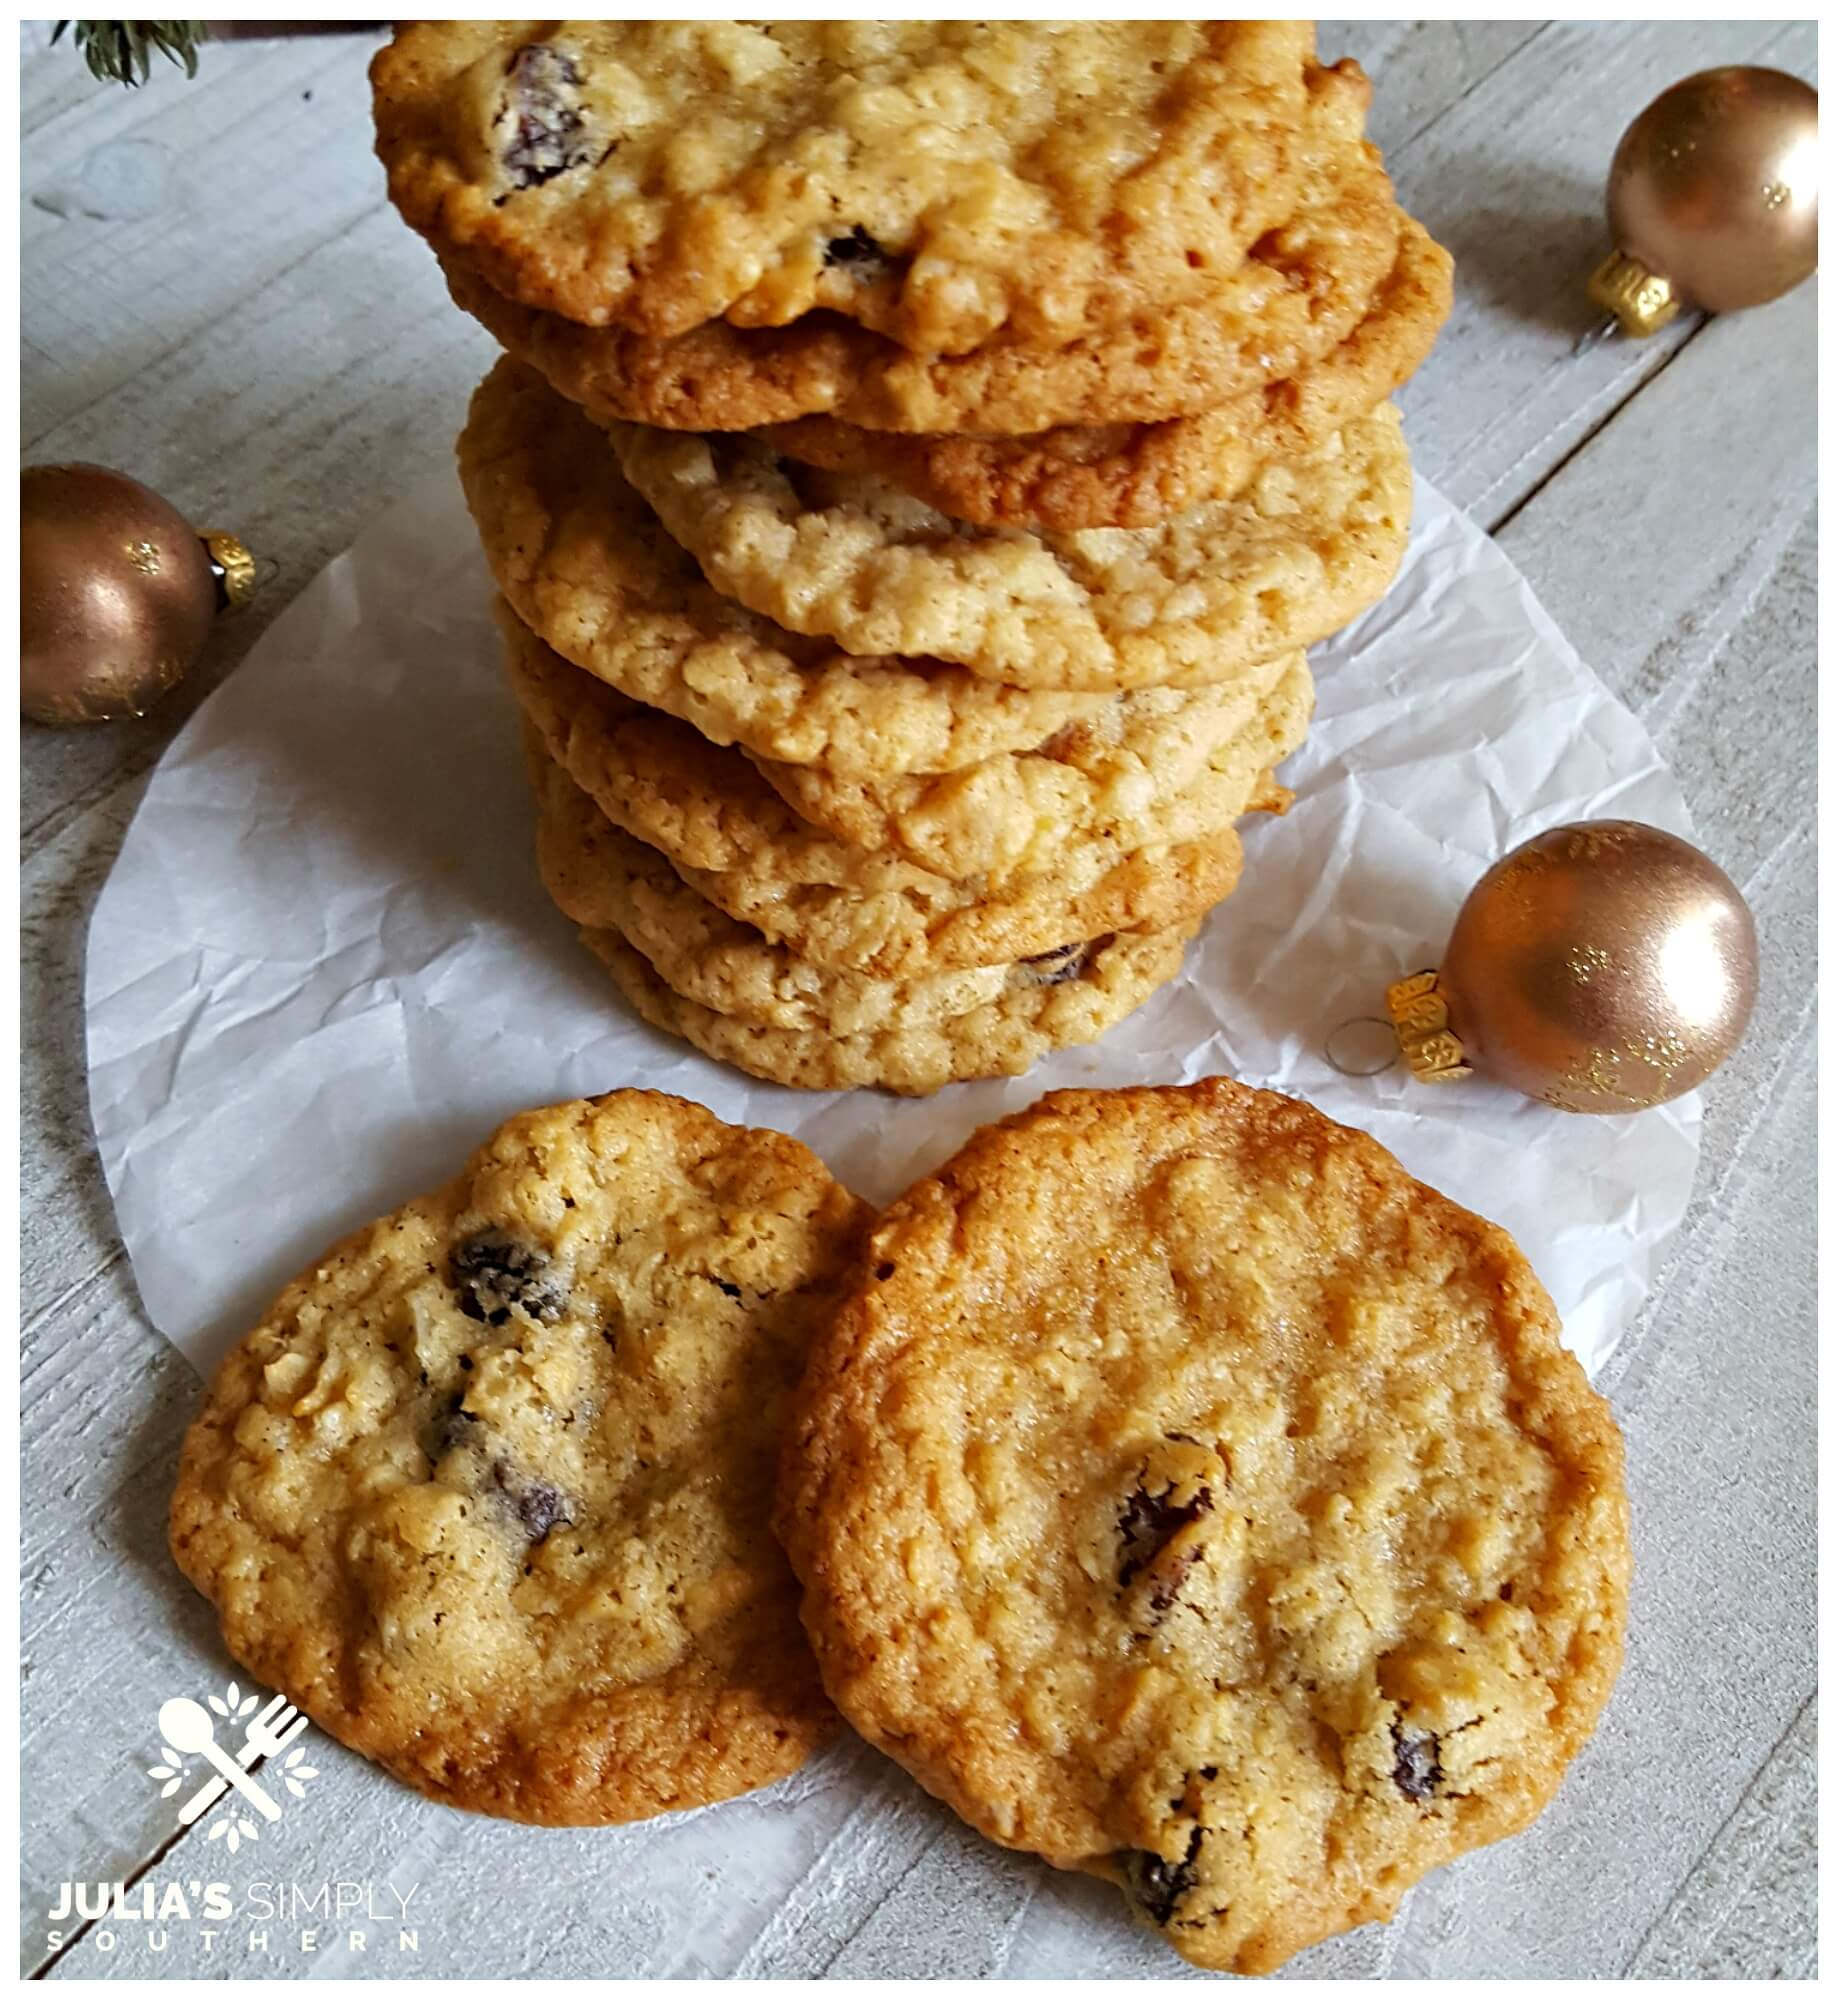 Old Fashioned oatmeal raising cookies - holiday baking